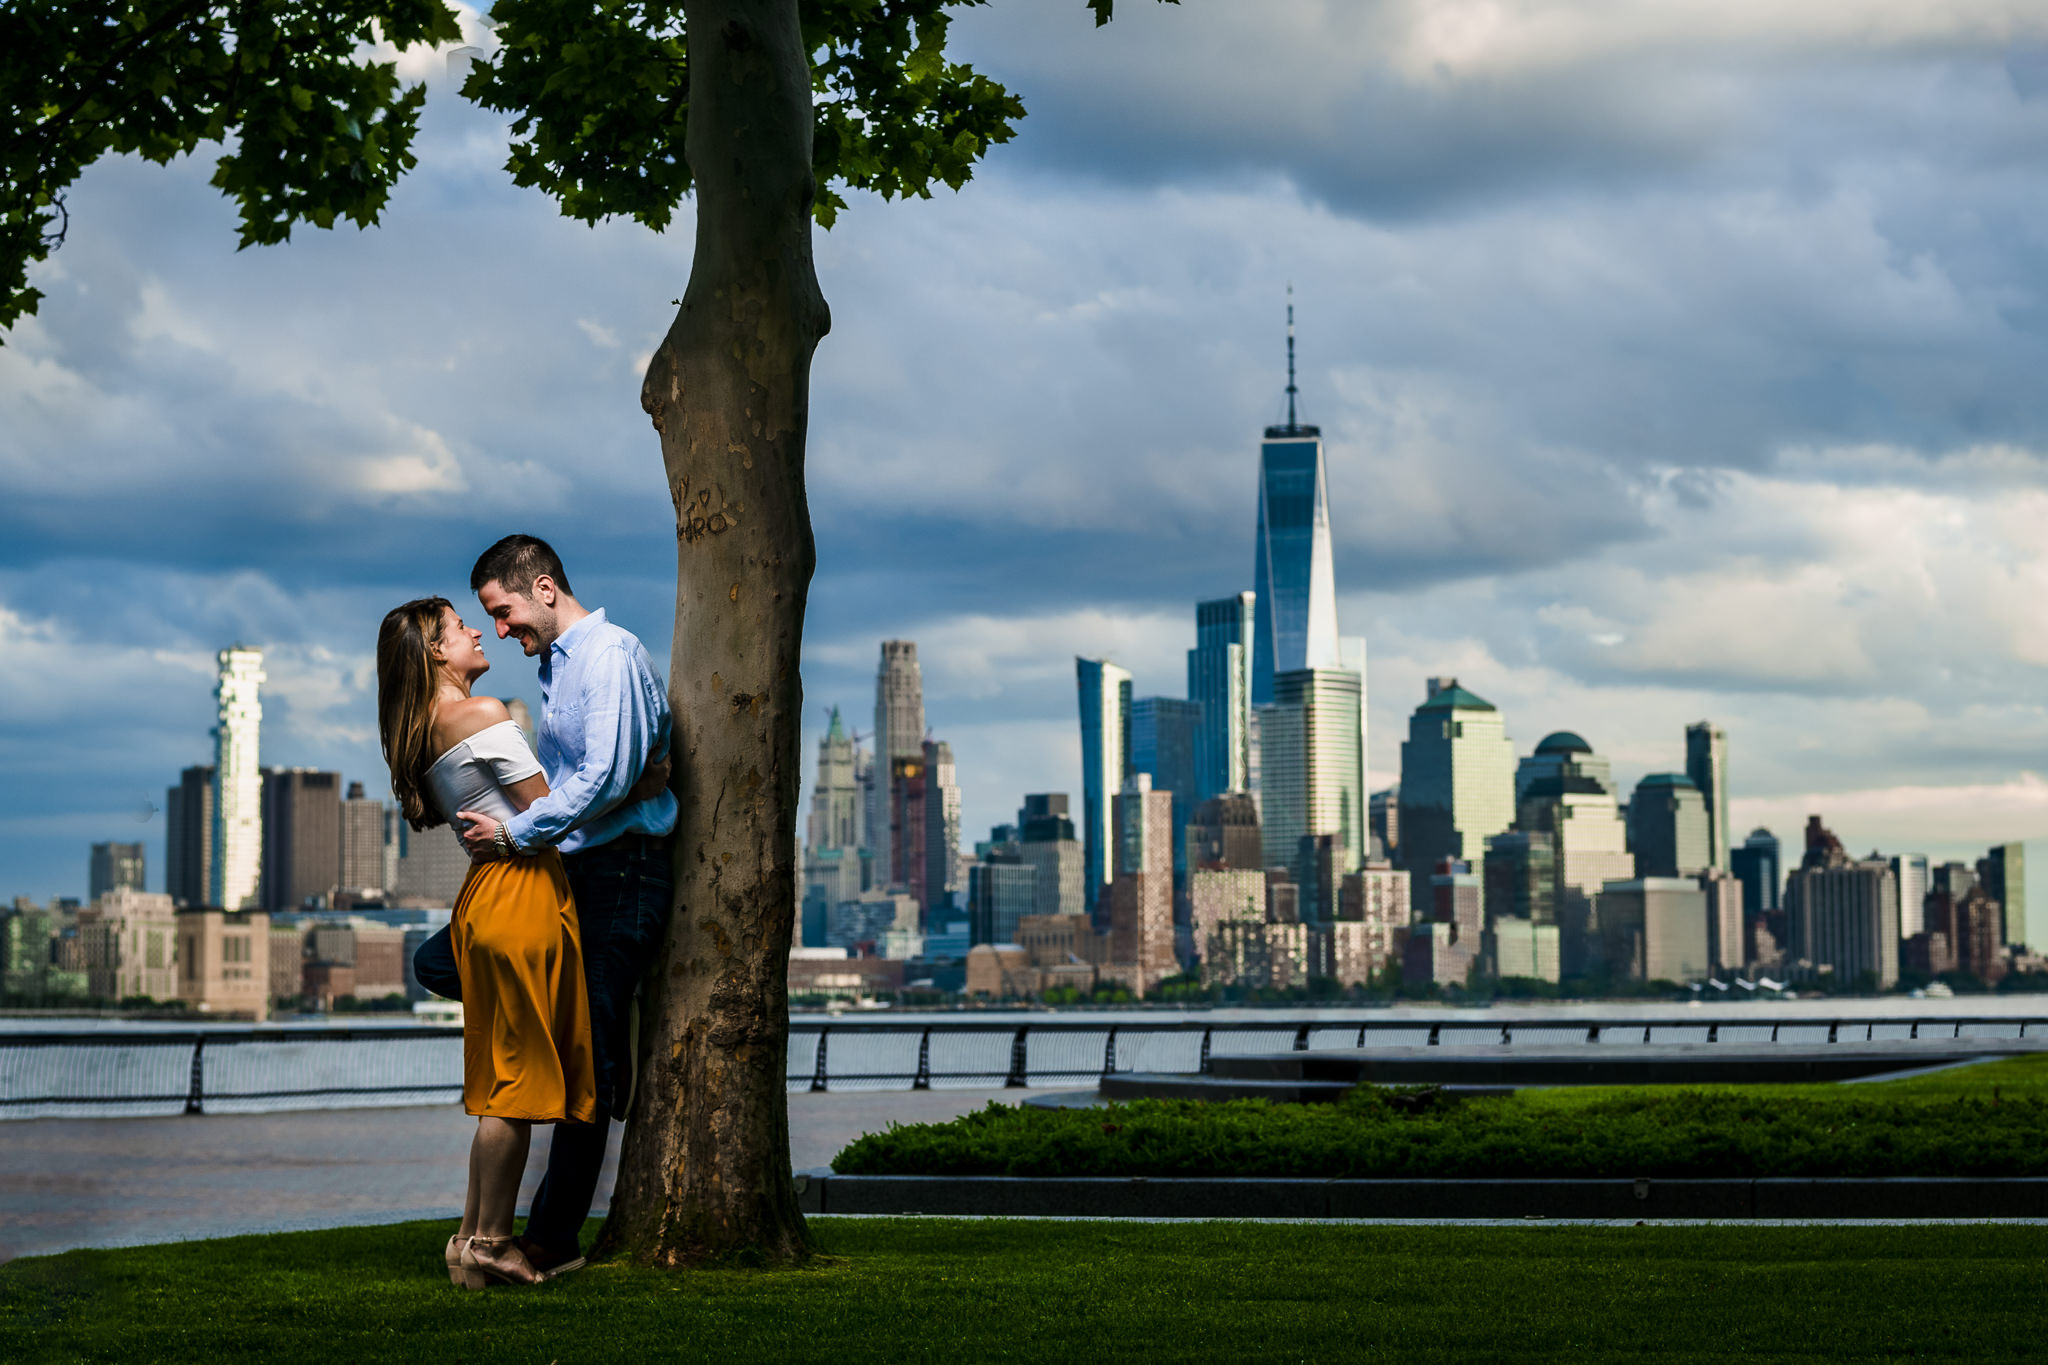 Flanagan-Pier-Hoboken-Engagement-Photos-NYC-Photographer-15.JPG